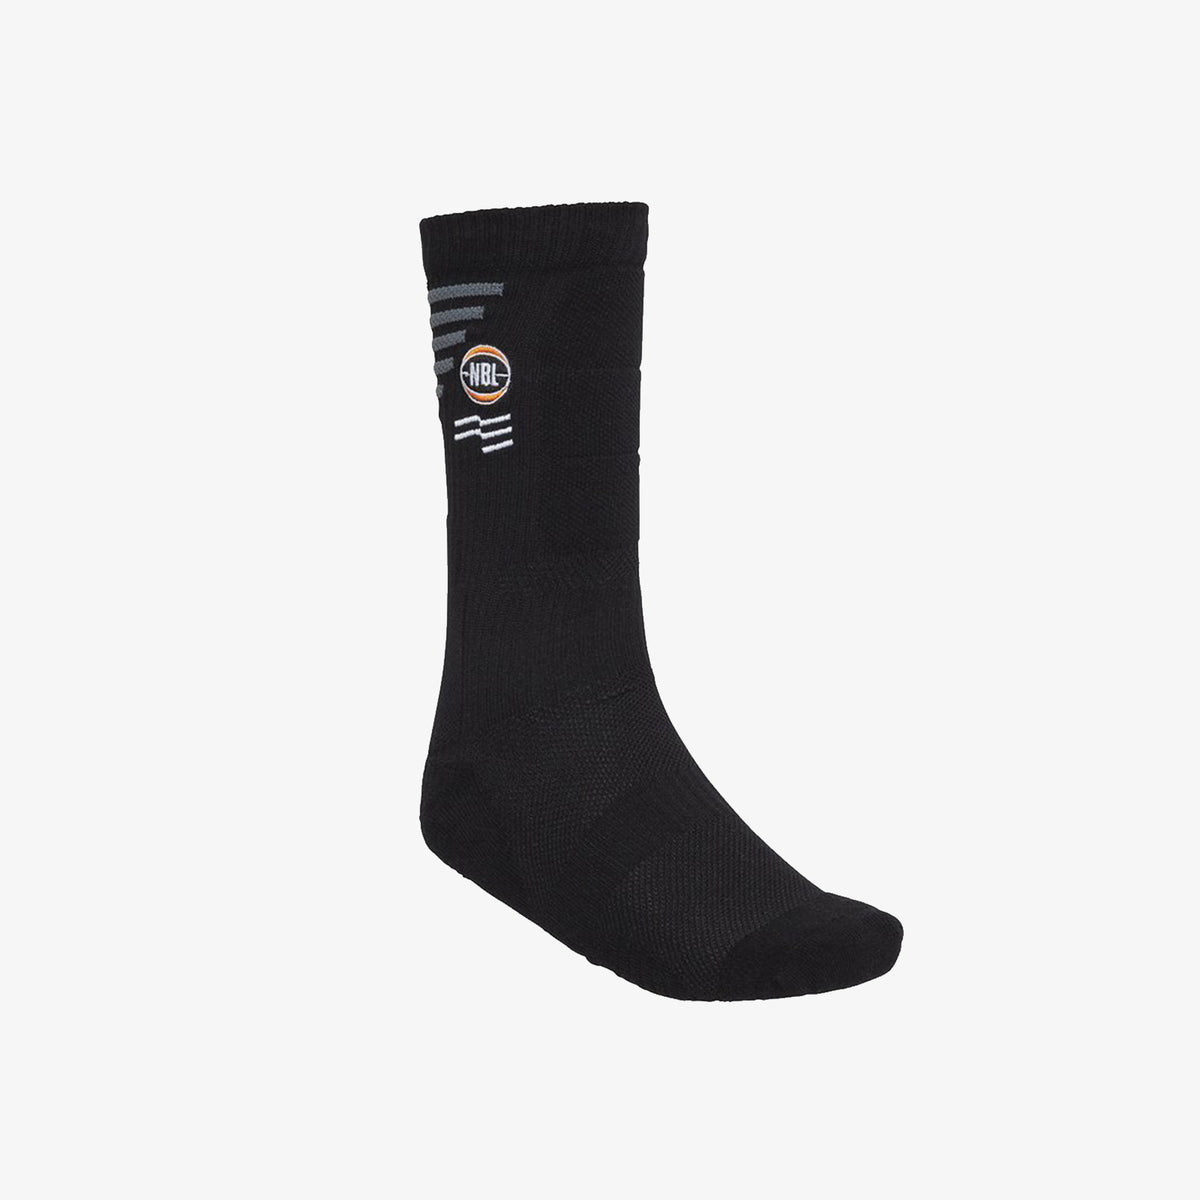 Official NBL Socks Home 19/20 - Black